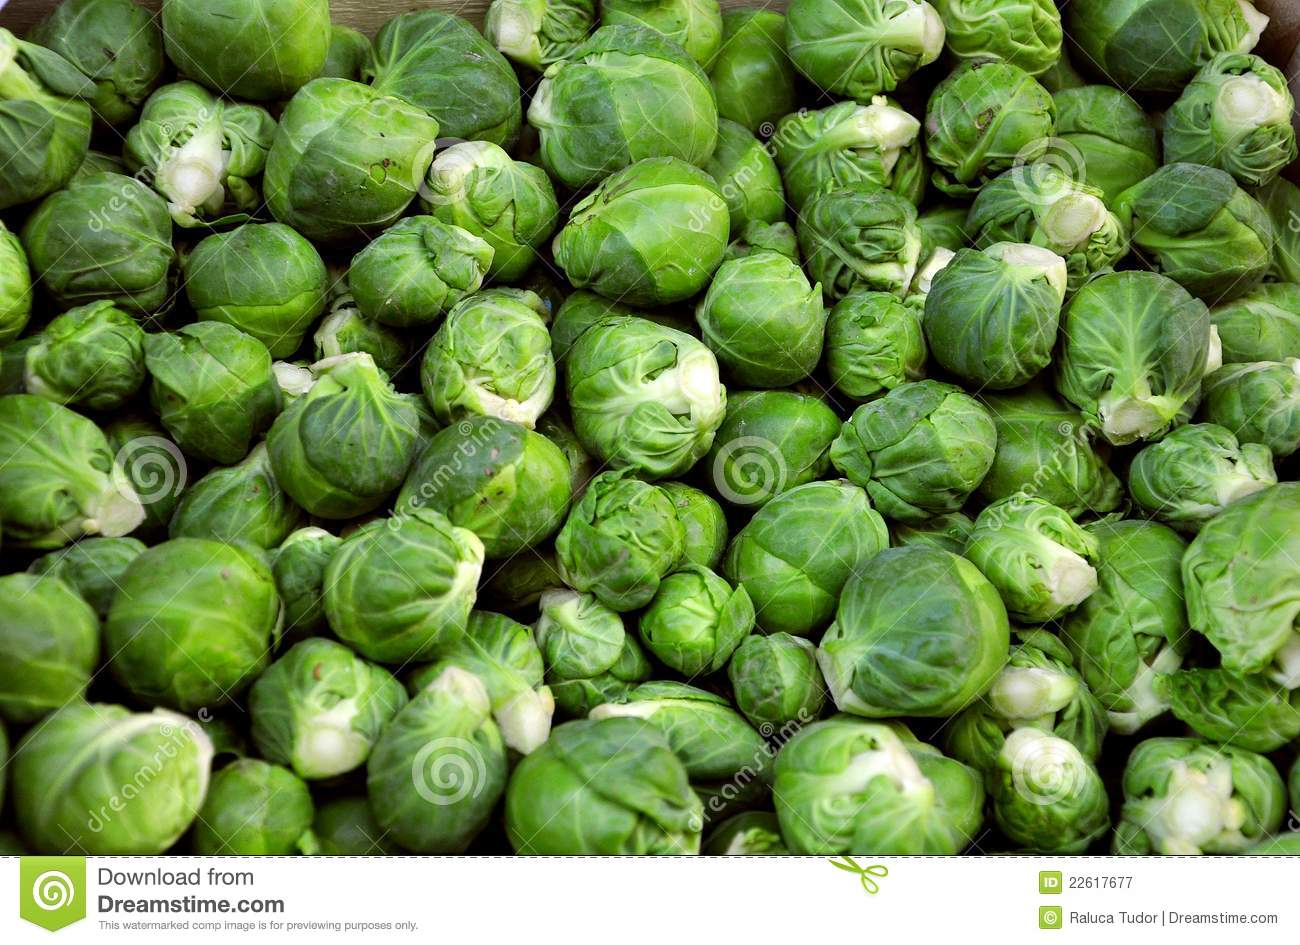 Brussel sprouts on sale in a market